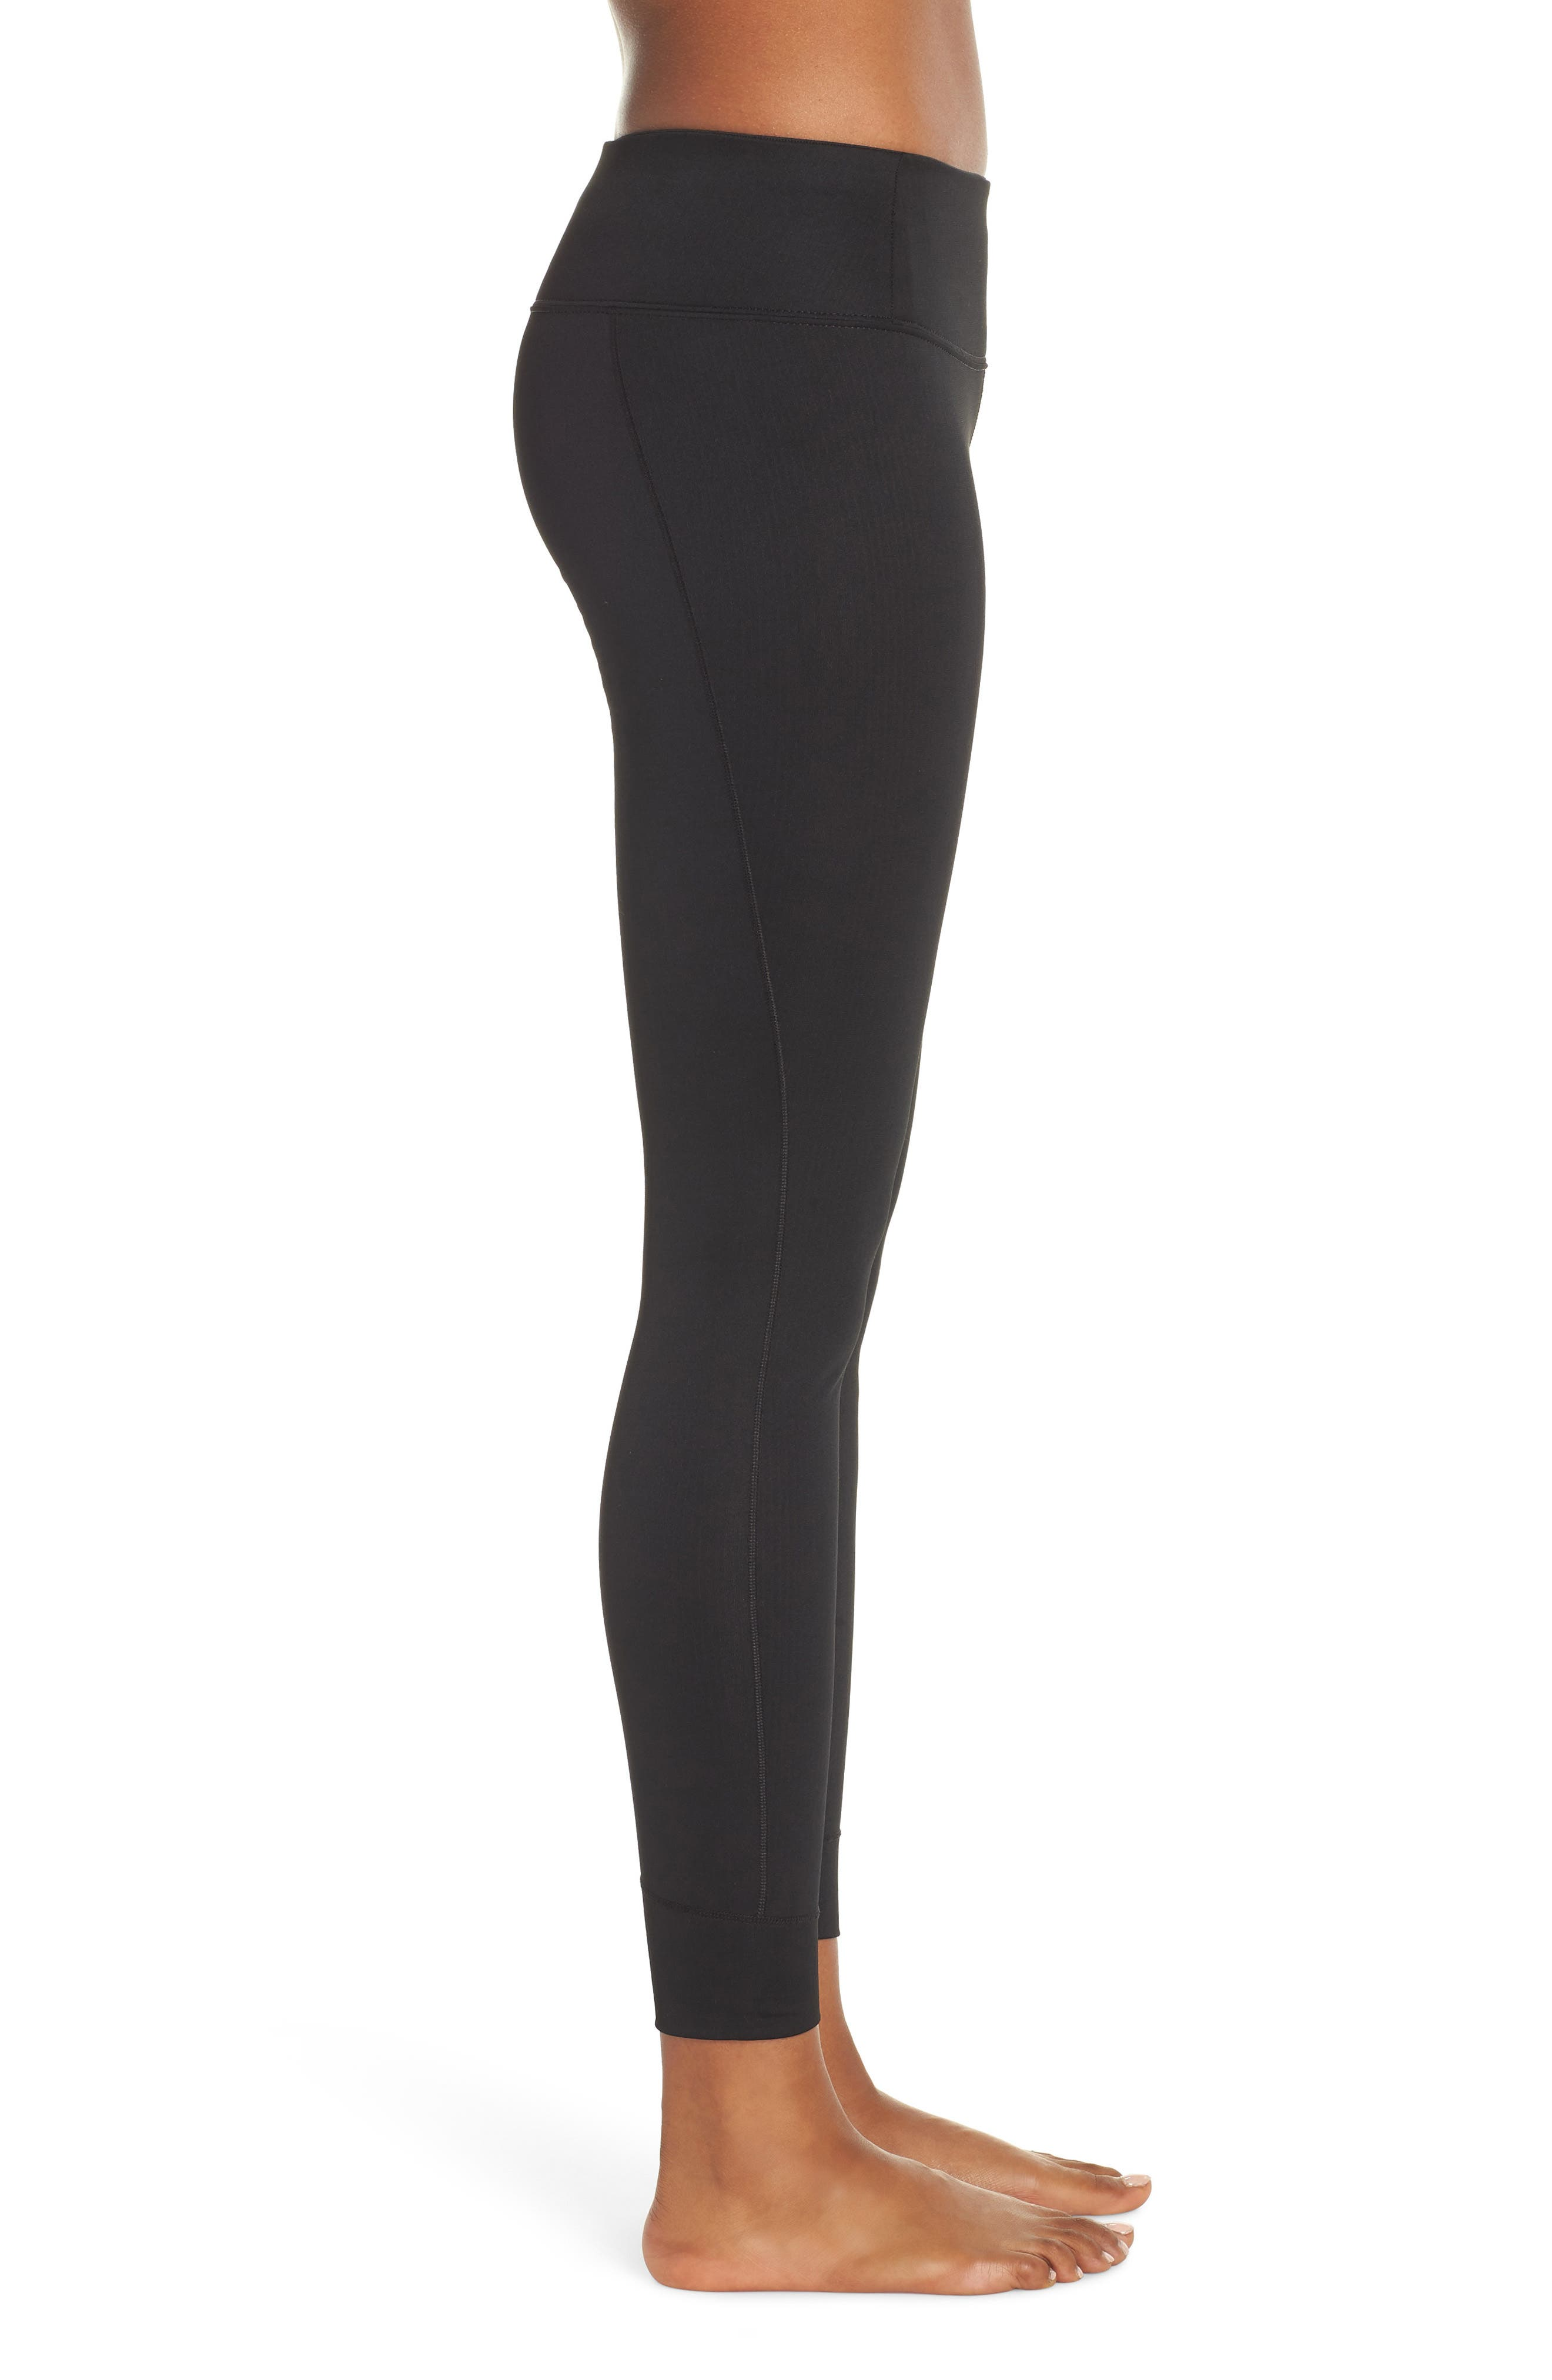 PATAGONIA, Capilene Midweight Base Layer Tights, Alternate thumbnail 4, color, BLACK